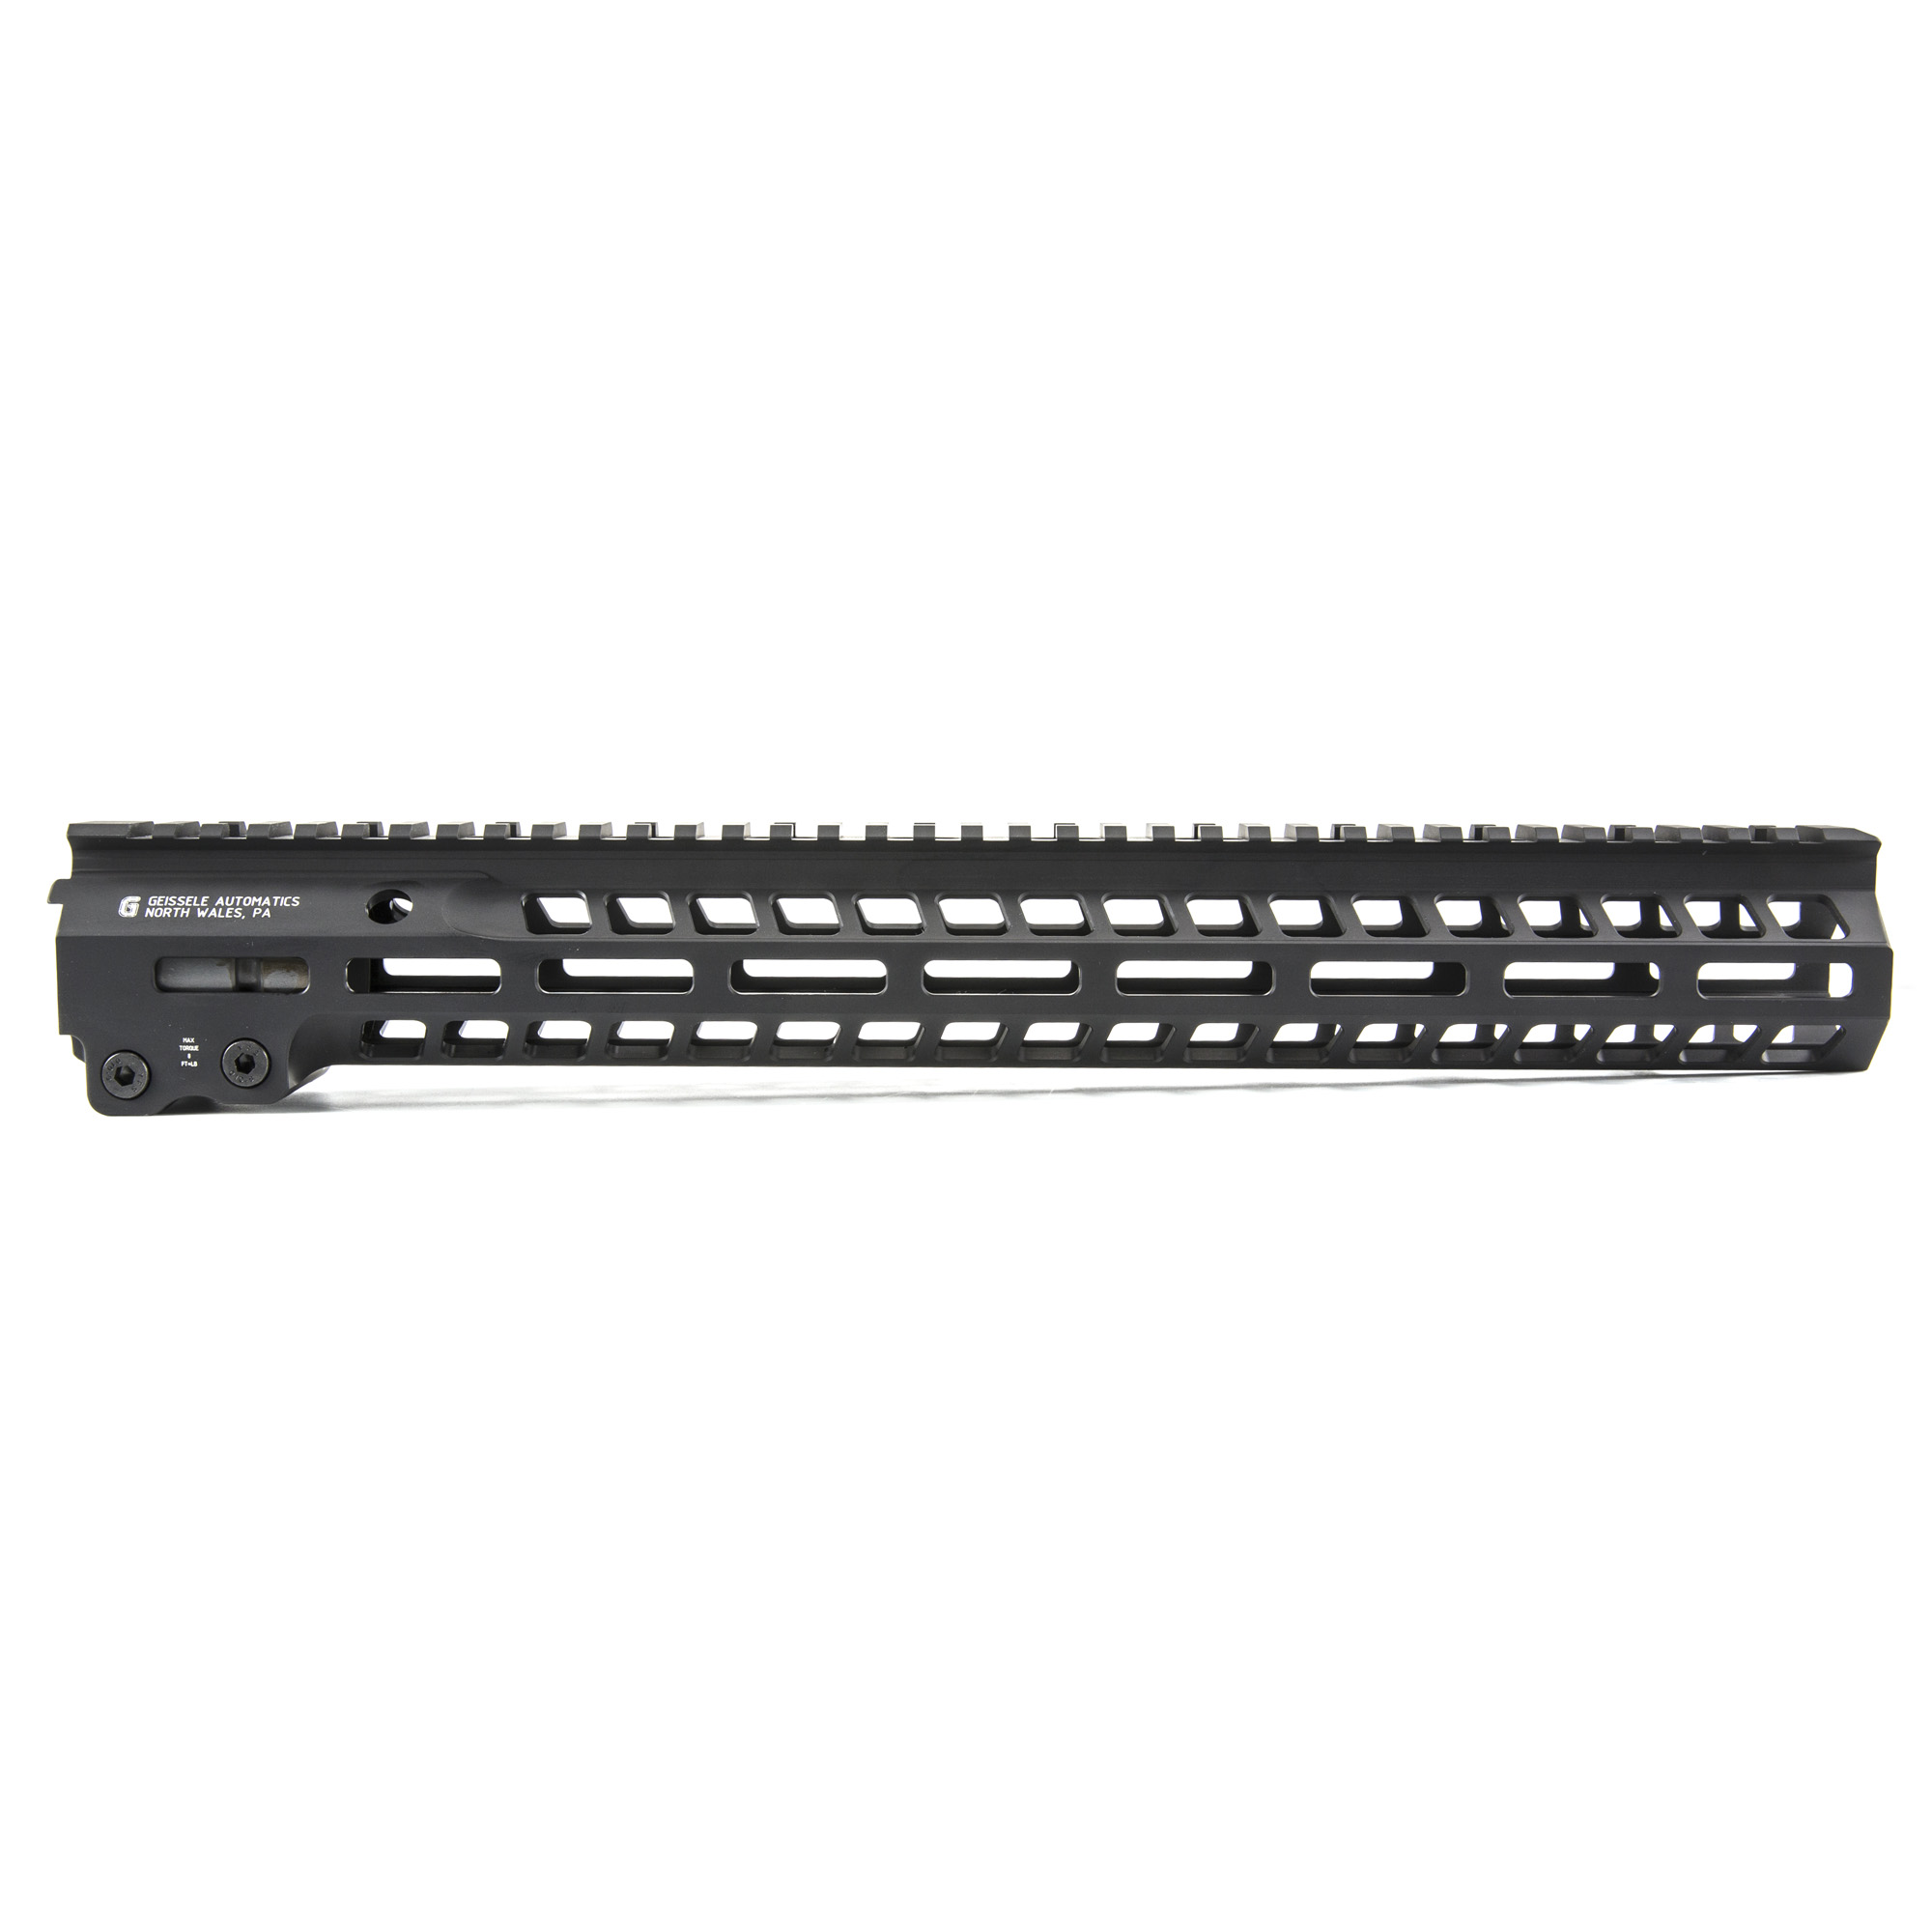 """Geissele's Automatics MK14 Super Modular 15"""" M-Lok Rail"""" is the latest entry to the Geissele line up of Super Modular Rails. The new handguard design offers a smaller diameter and overall height to create a slimmer package. Included with the MK14 Super Modular Rail is an updated version of the proven Geissele Barrel Nut design"""" not only providing ease of installation but superior rigidity. The long surface contact of the 2.25"""" barrel nut interfaces with the receiver creating a platform that can be trusted to be straight and true the entire length of the free float rail. The MK14 is 3d precision machined using 6061-T6 Aluminum due to its strong"""" rigid and lightweight properties. Utilizing Magpul's M-LOK technology in the 3"""" 6"""" and 9 o'clock positions allow the end user full customization and modularity of their rifle to securely mount lights"""" bipods and other firearm accessories. The Geissele MK14 Super Modular rail is Type 3 Hardcoat Anodized. This product is bundled with a low-profile Geissele Super Gas Block."""